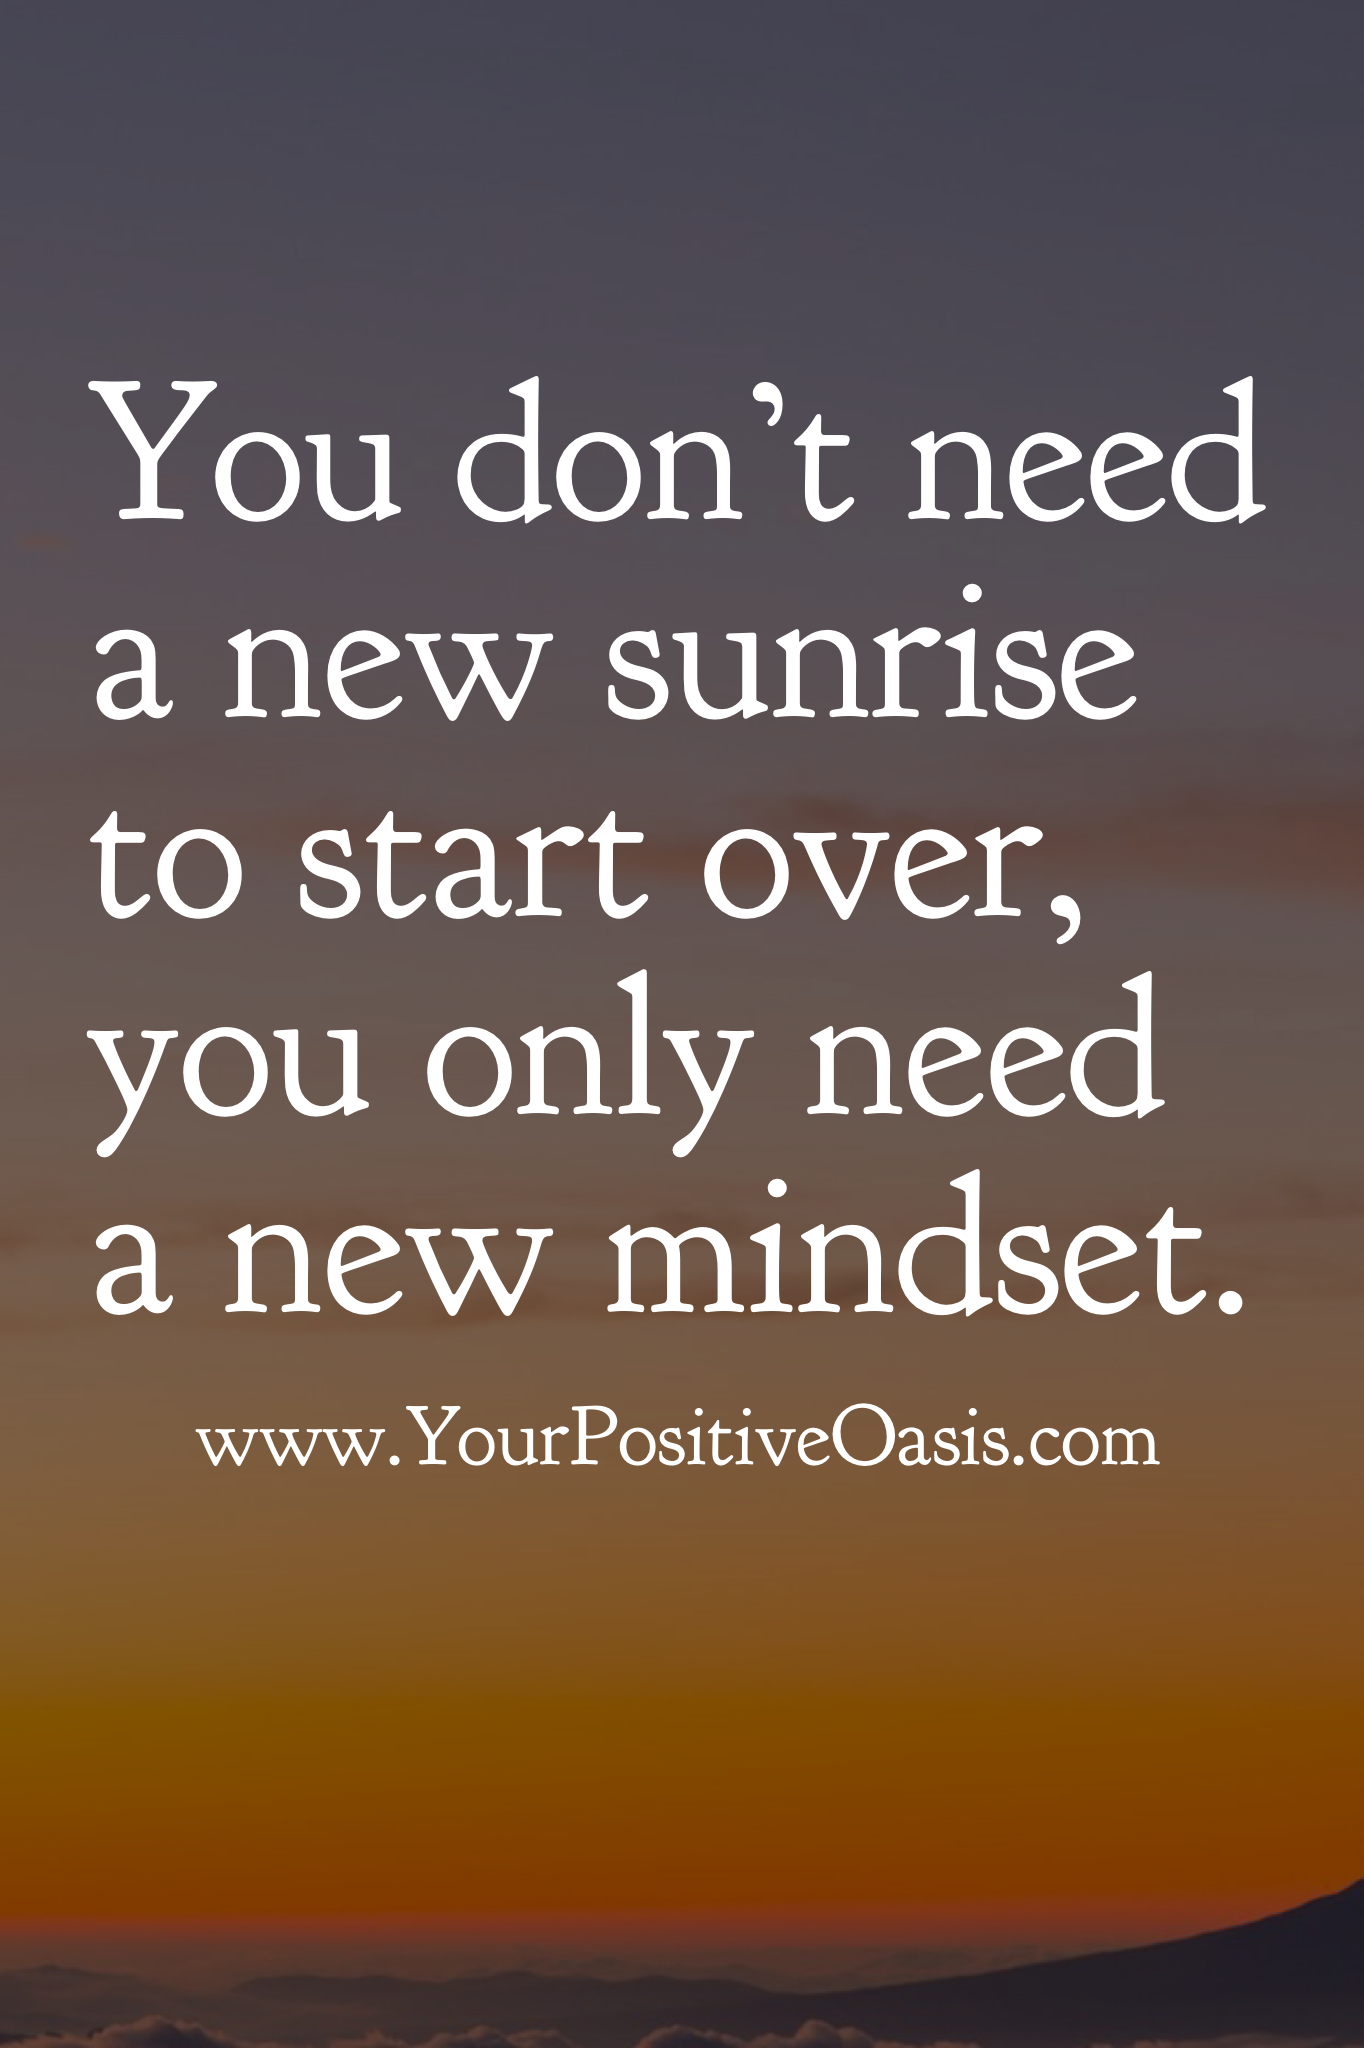 You dont need a new sunrise to start over you only need a new mindset